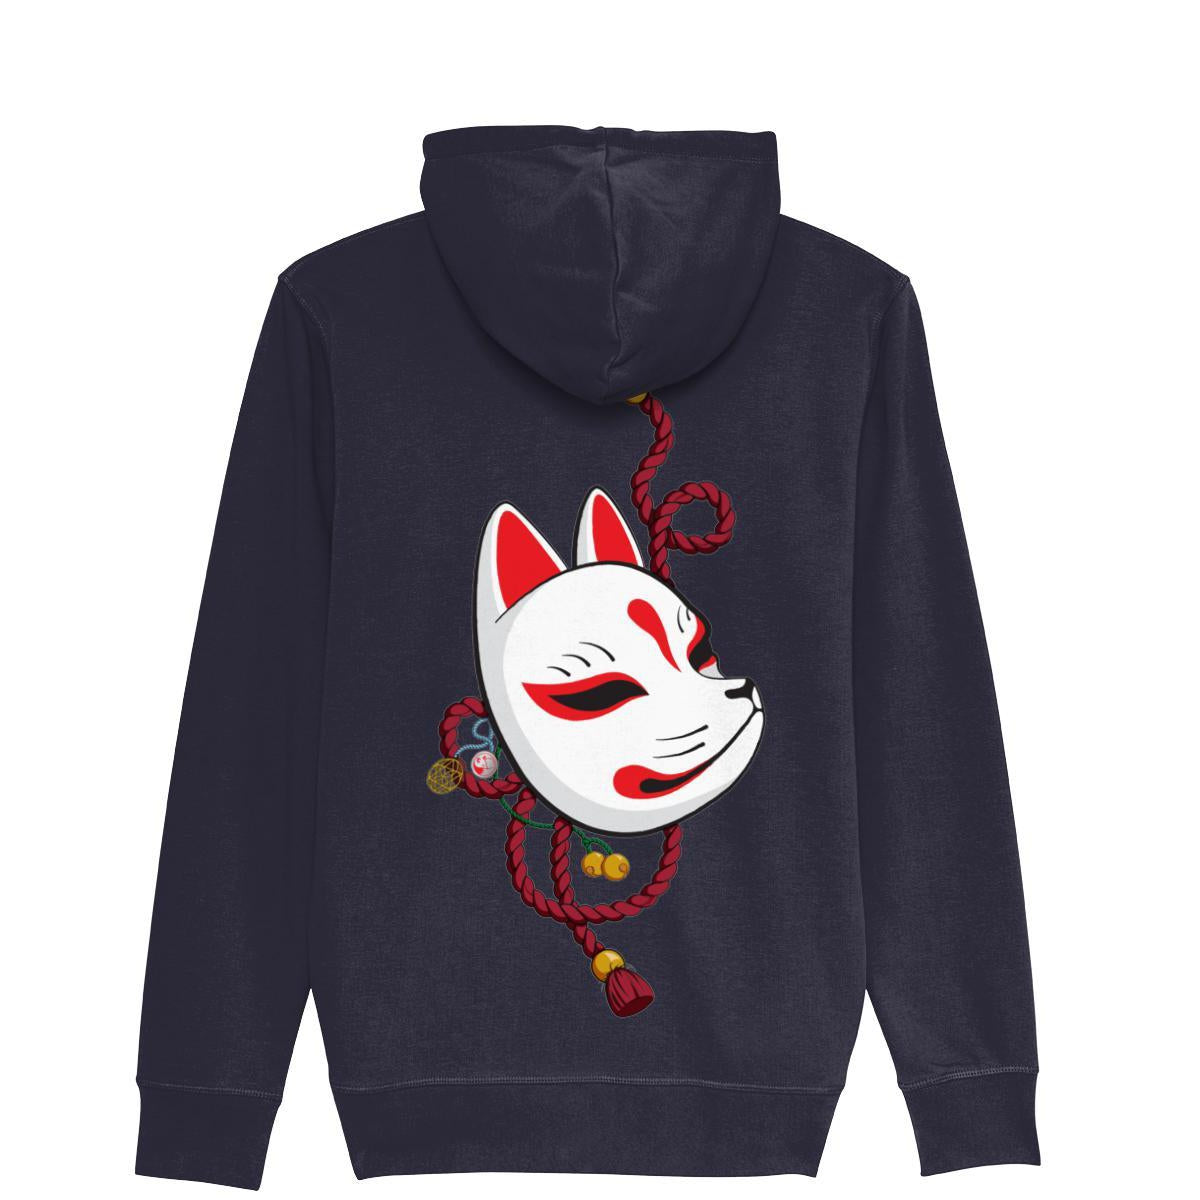 Kitsune Mask ZipUp Hoodie-Clothing-Kitsune Clothing UK Ltd